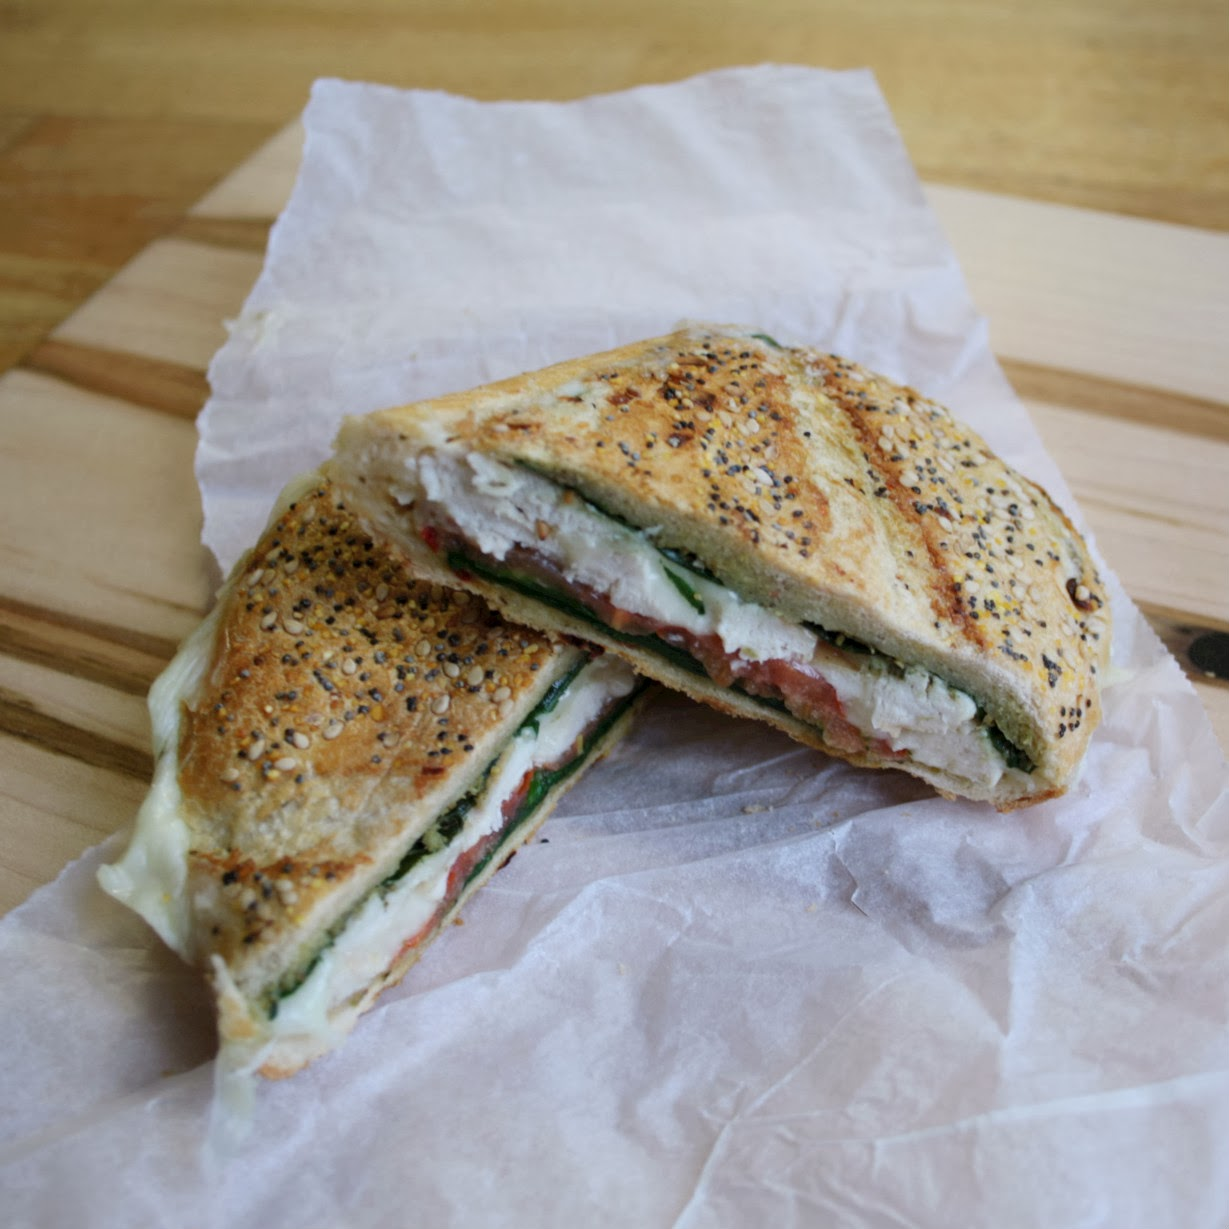 A smaller version of my Shooter's Sandwich - the chicken and pesto pressed sandwich is stuffed with grilled chicken breast, spinach, tomato, mozzarella and pesto